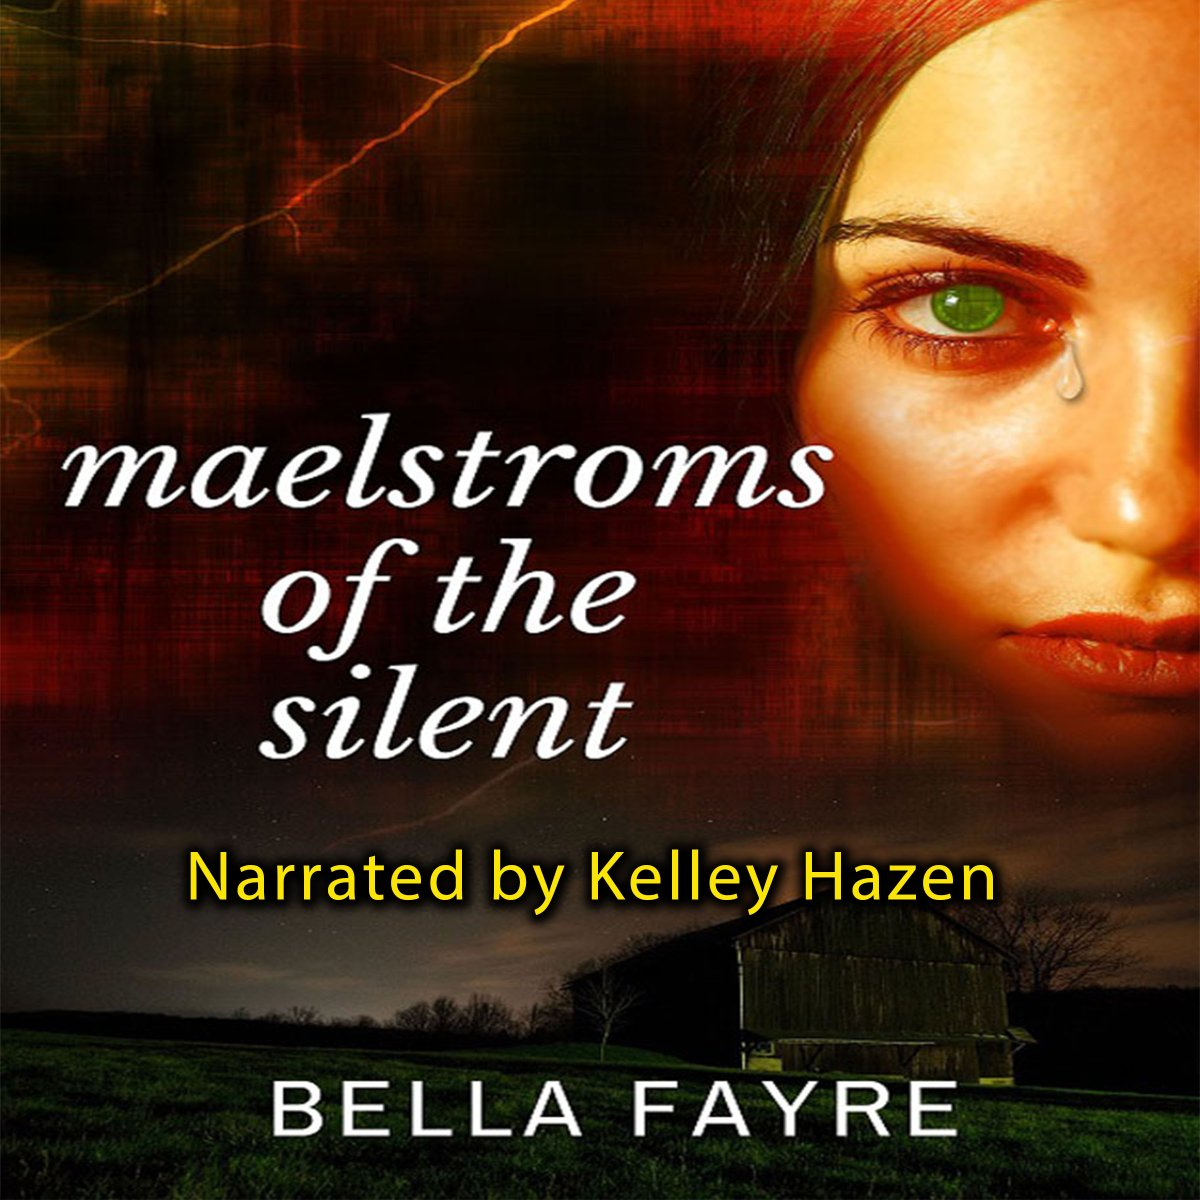 Mystery, #mystery evrywhere Cool #ListenToThis   4 a hot summer day from #AwardWinning #author BELLA FAYRE  #forensicpsychology  MAELSTROMS OF SILENT & GUARDIANS OF DEAD #NewRelease #audiobook #5stars   https://adbl.co/3dhR6Zjpic.twitter.com/pJeqQPhlfM